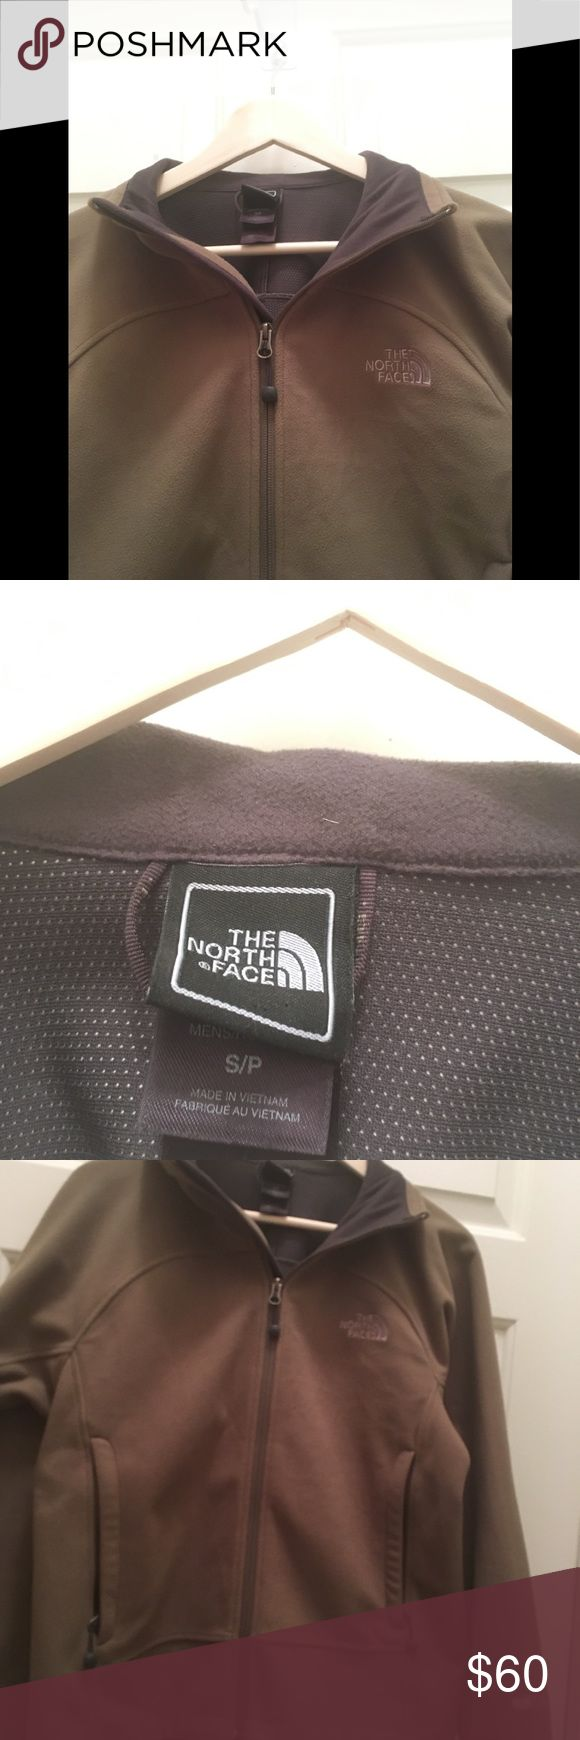 North face men's jacket North face men's green jacket windwall. Only worn a few times size Small The North Face Jackets & Coats Lightweight & Shirt Jackets